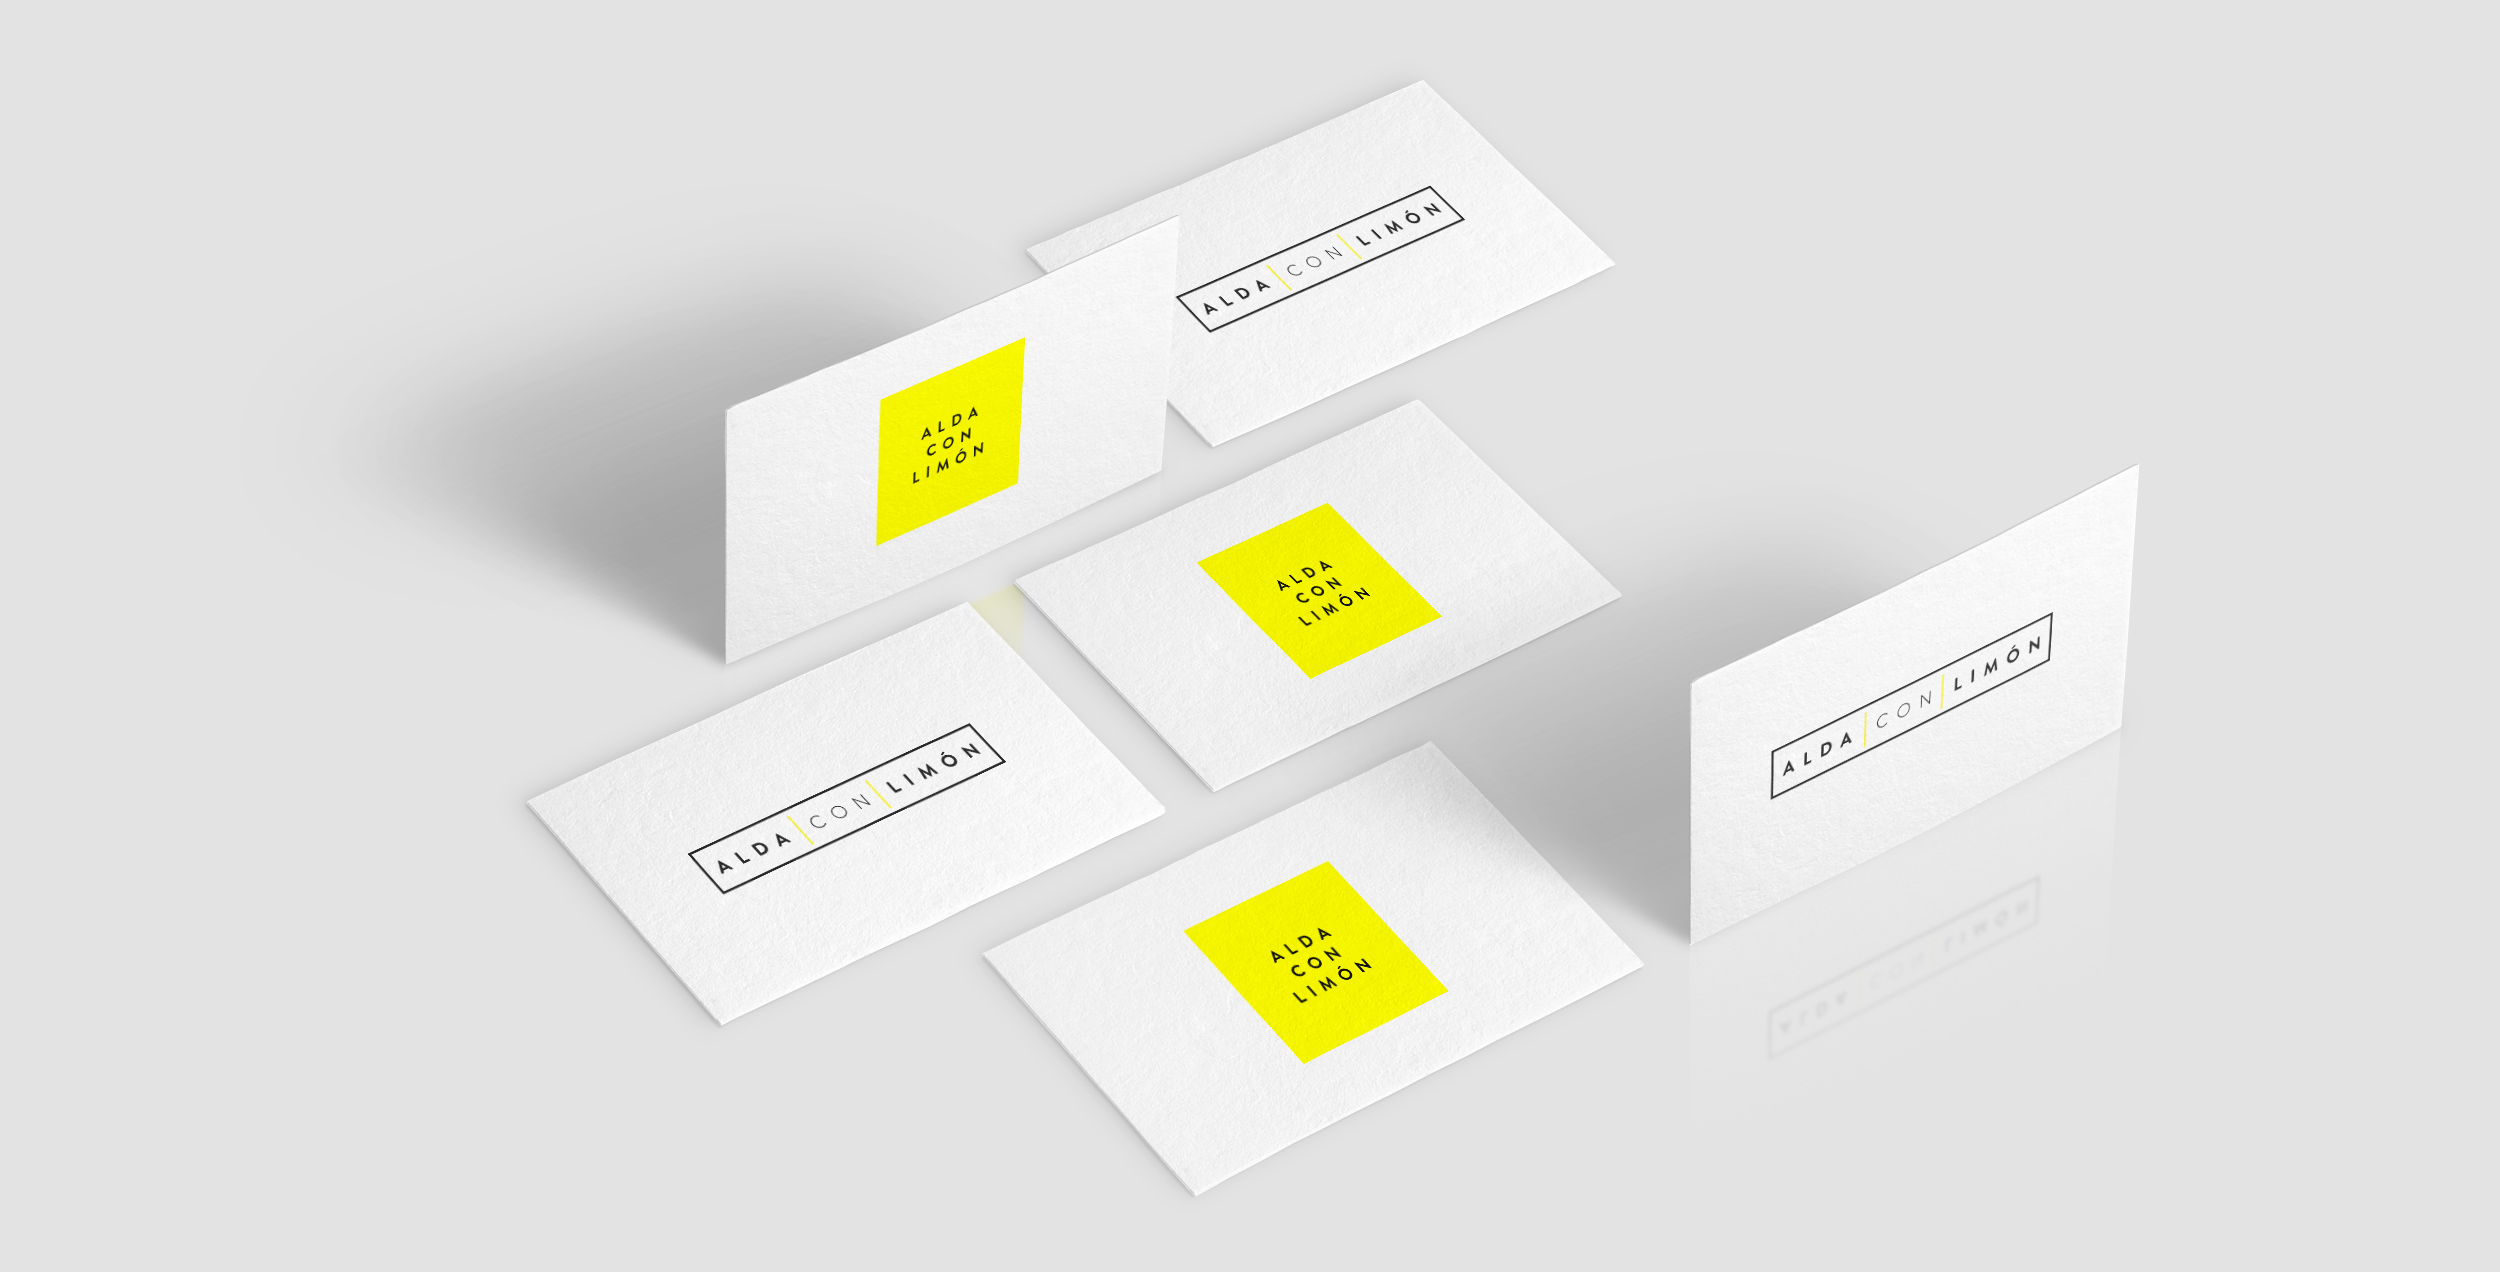 Alda con Limón Branding & Web Design Proyecto por The Woork Co